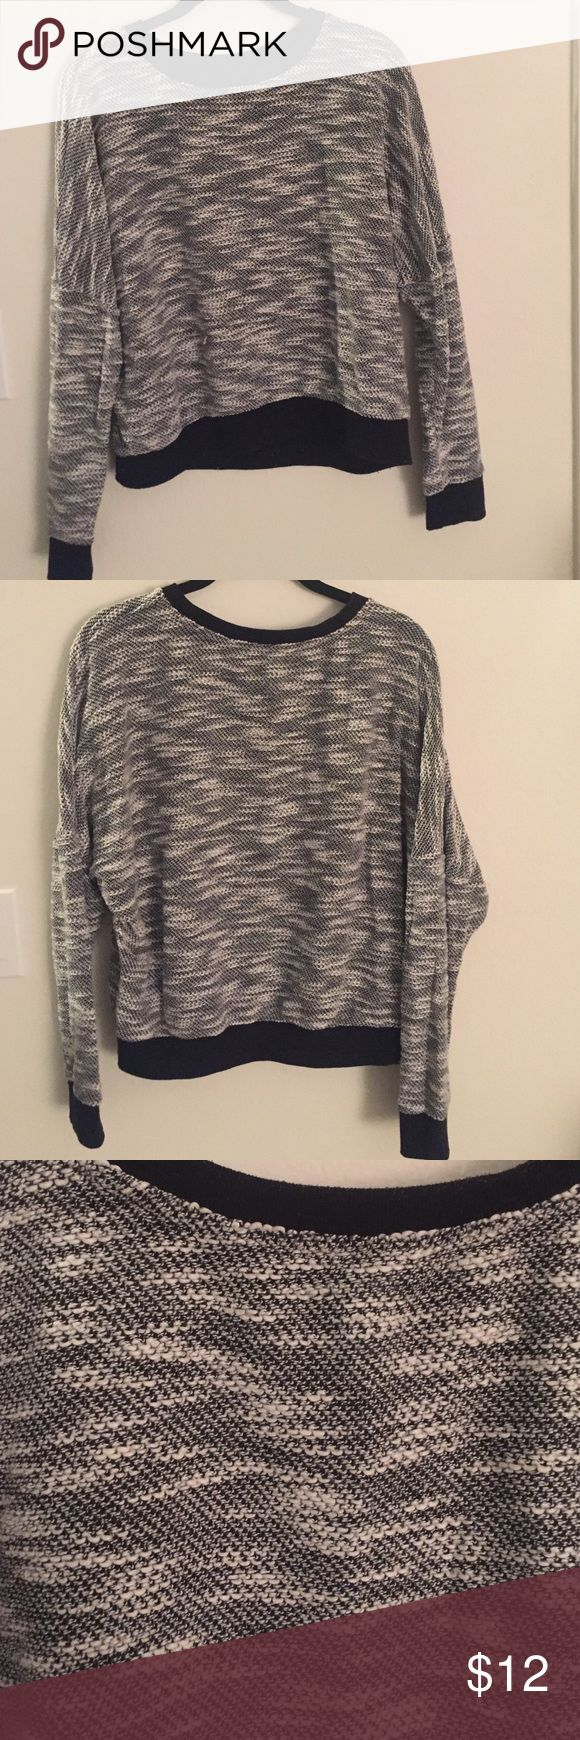 Black and white crewneck sweater Like new black and white crewneck sweater, cool design, oversized ✨always open to offers✨ Tops Sweatshirts & Hoodies